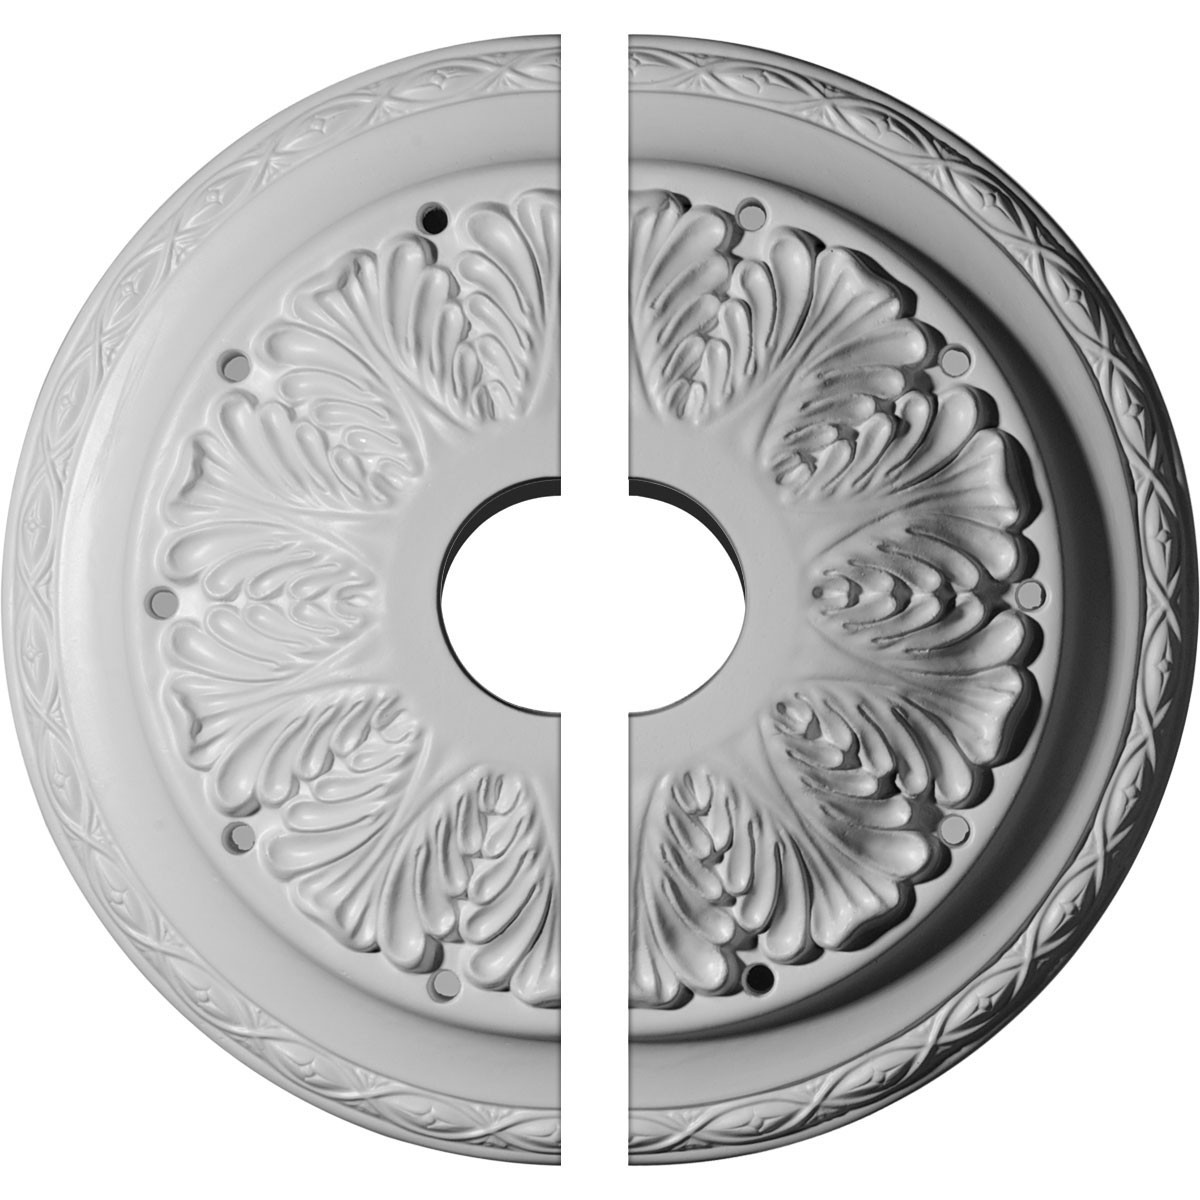 "EM-CM13AS2 - 13 3/4""OD x 2 3/4""ID x 3""P Asa Ceiling Medallion, Two Piece (Fits Canopies up to 4 1/2"")"